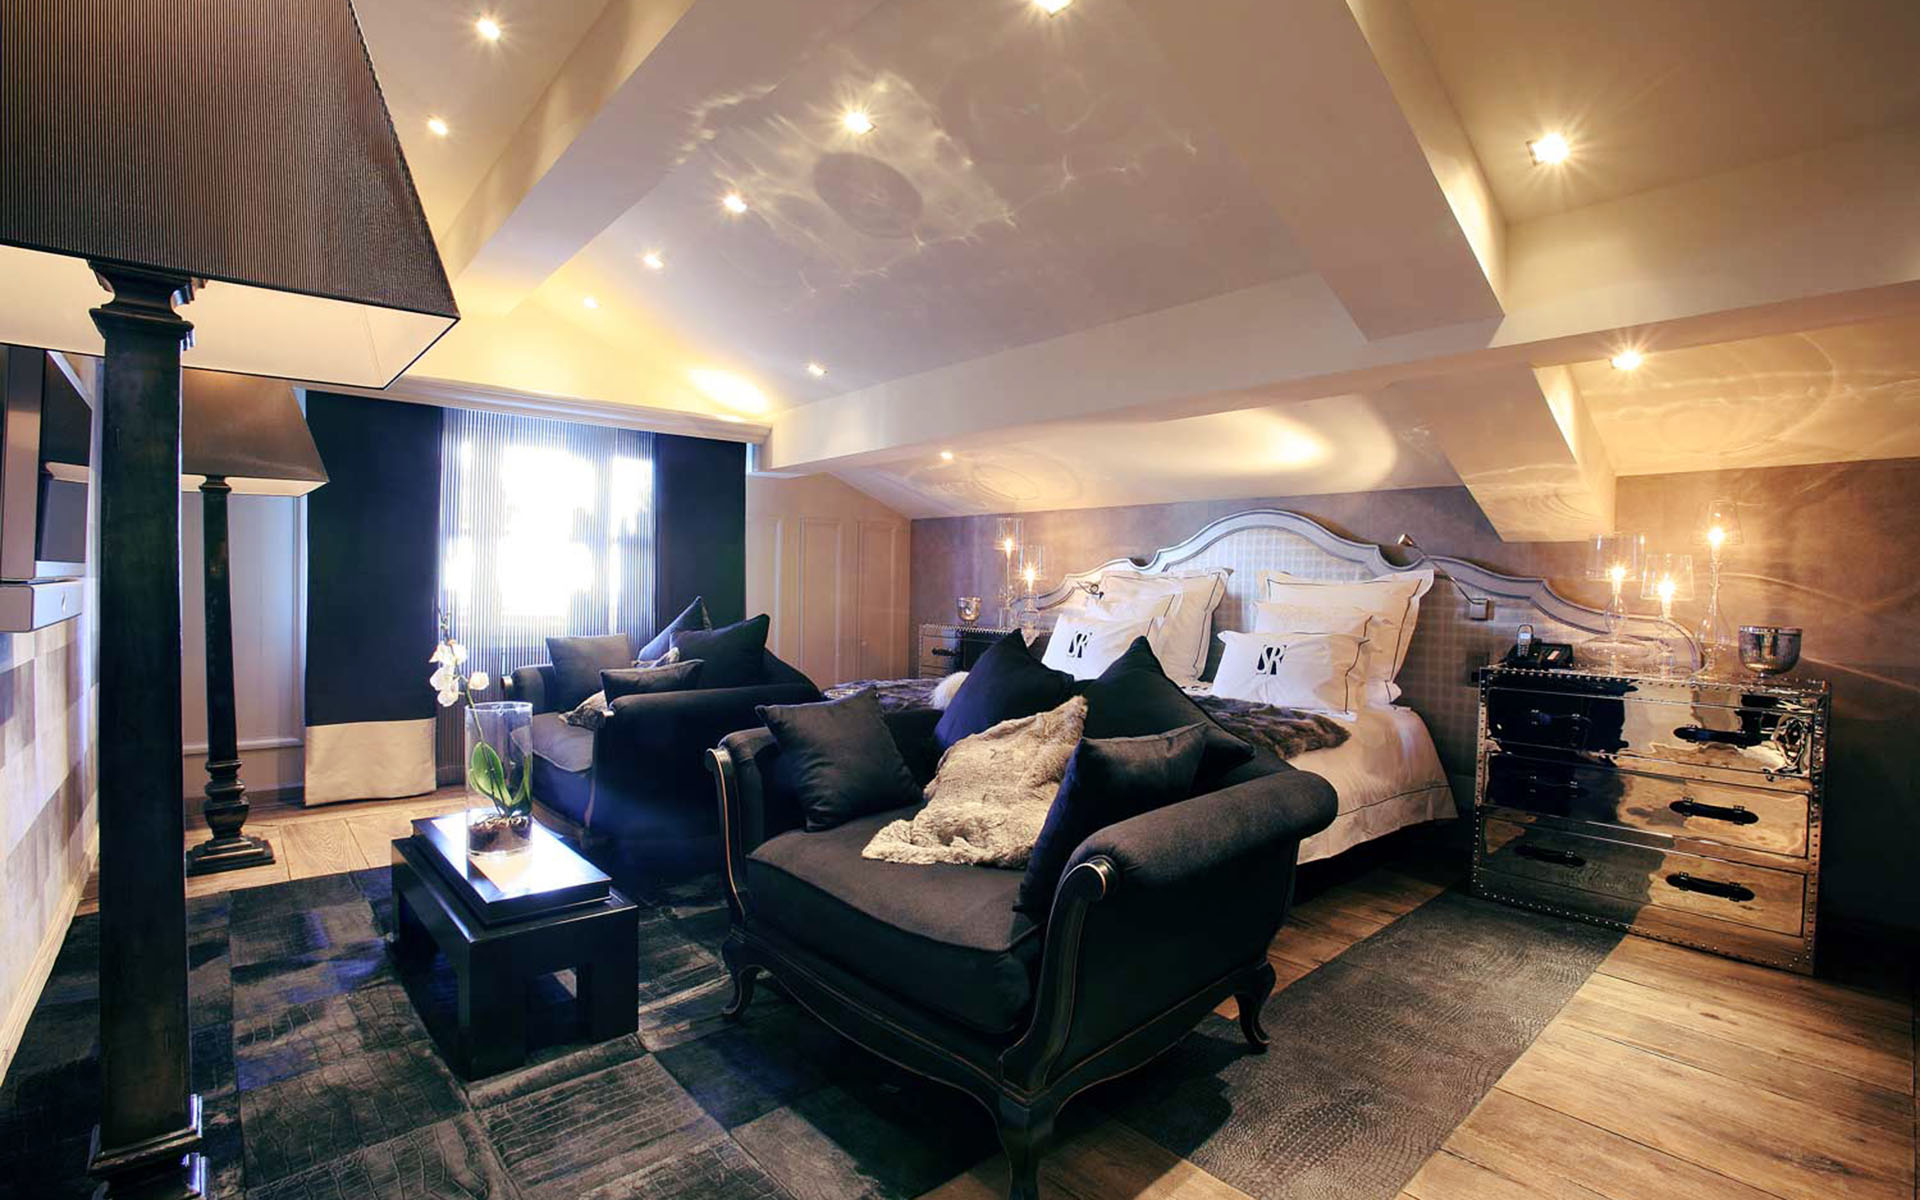 290/CHALETS/LOVE/saint_roch_courchevel_appartement_love_12.jpg